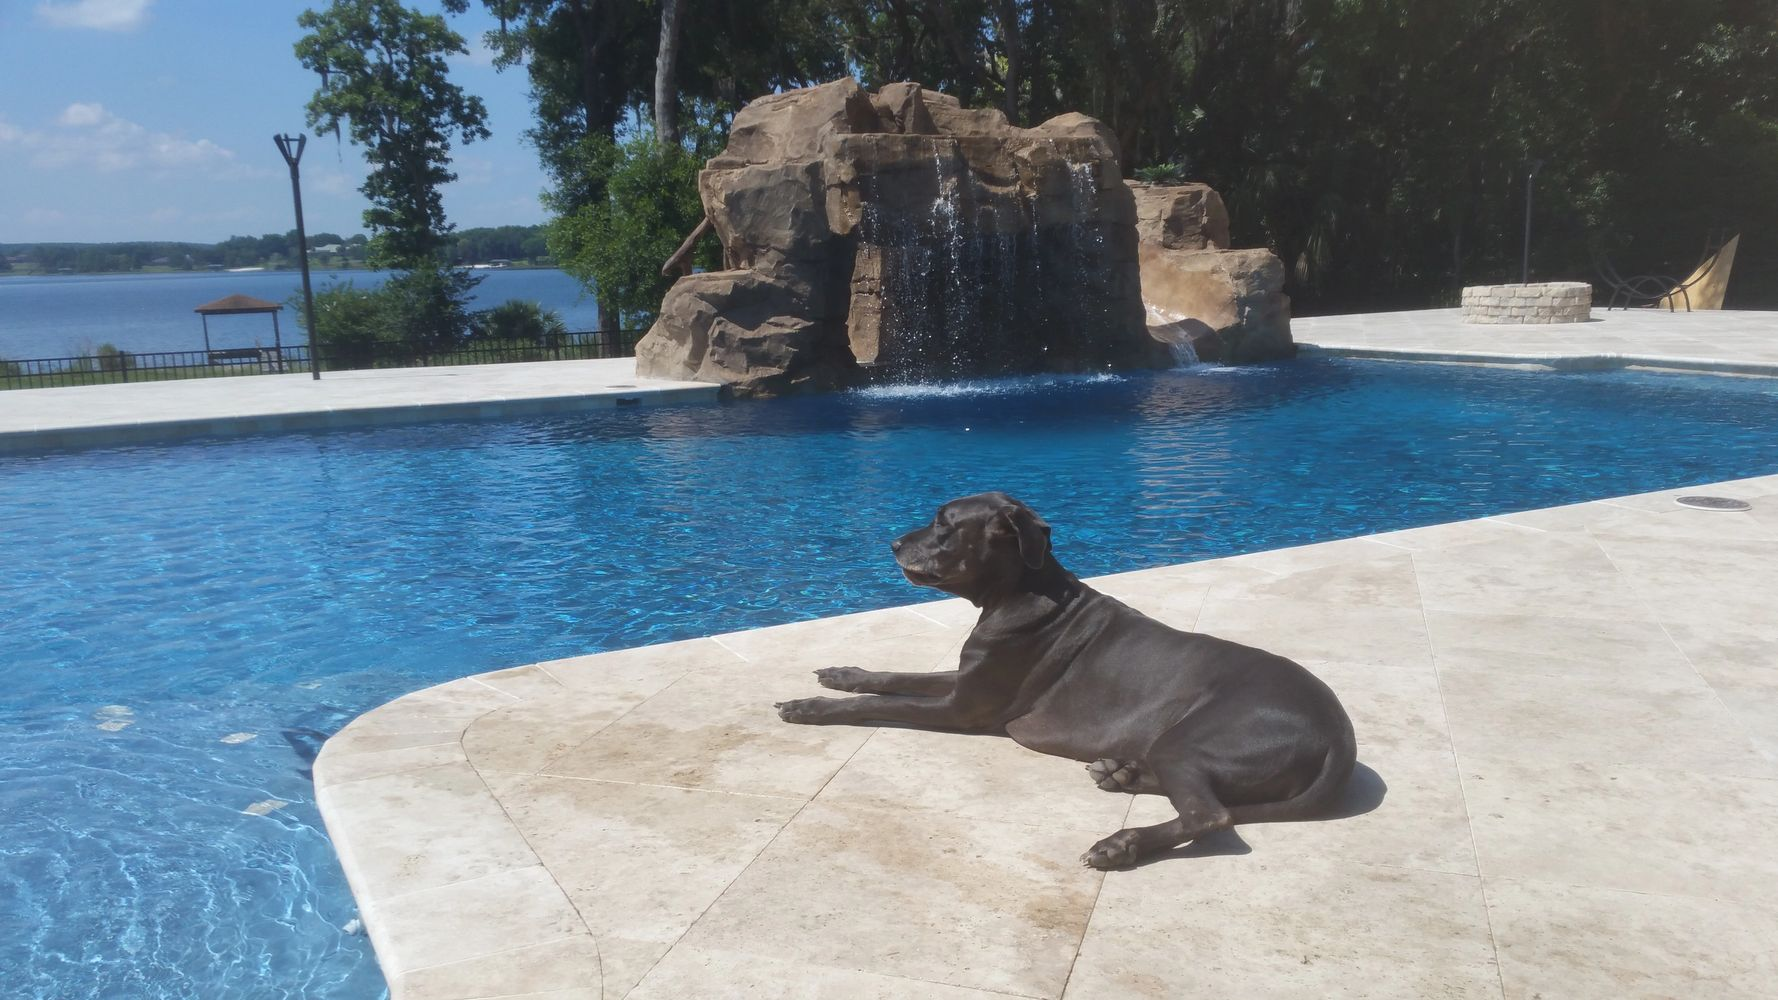 25'x 45' Gunite pool with travertine decking, grotto with tidal pool and slide, Great Dane optional.